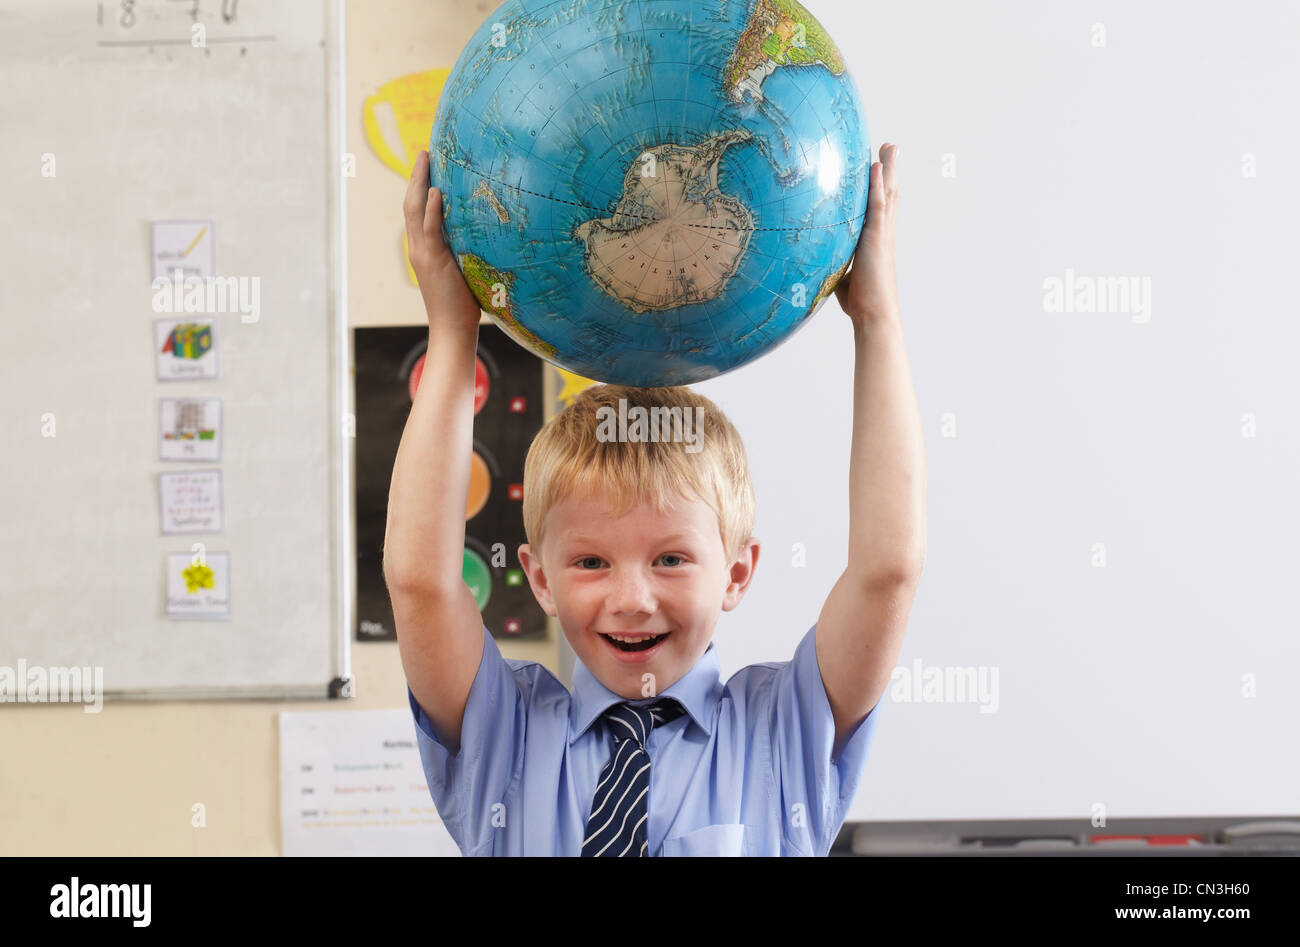 School boy holding globe over his head in a classroom - Stock Image